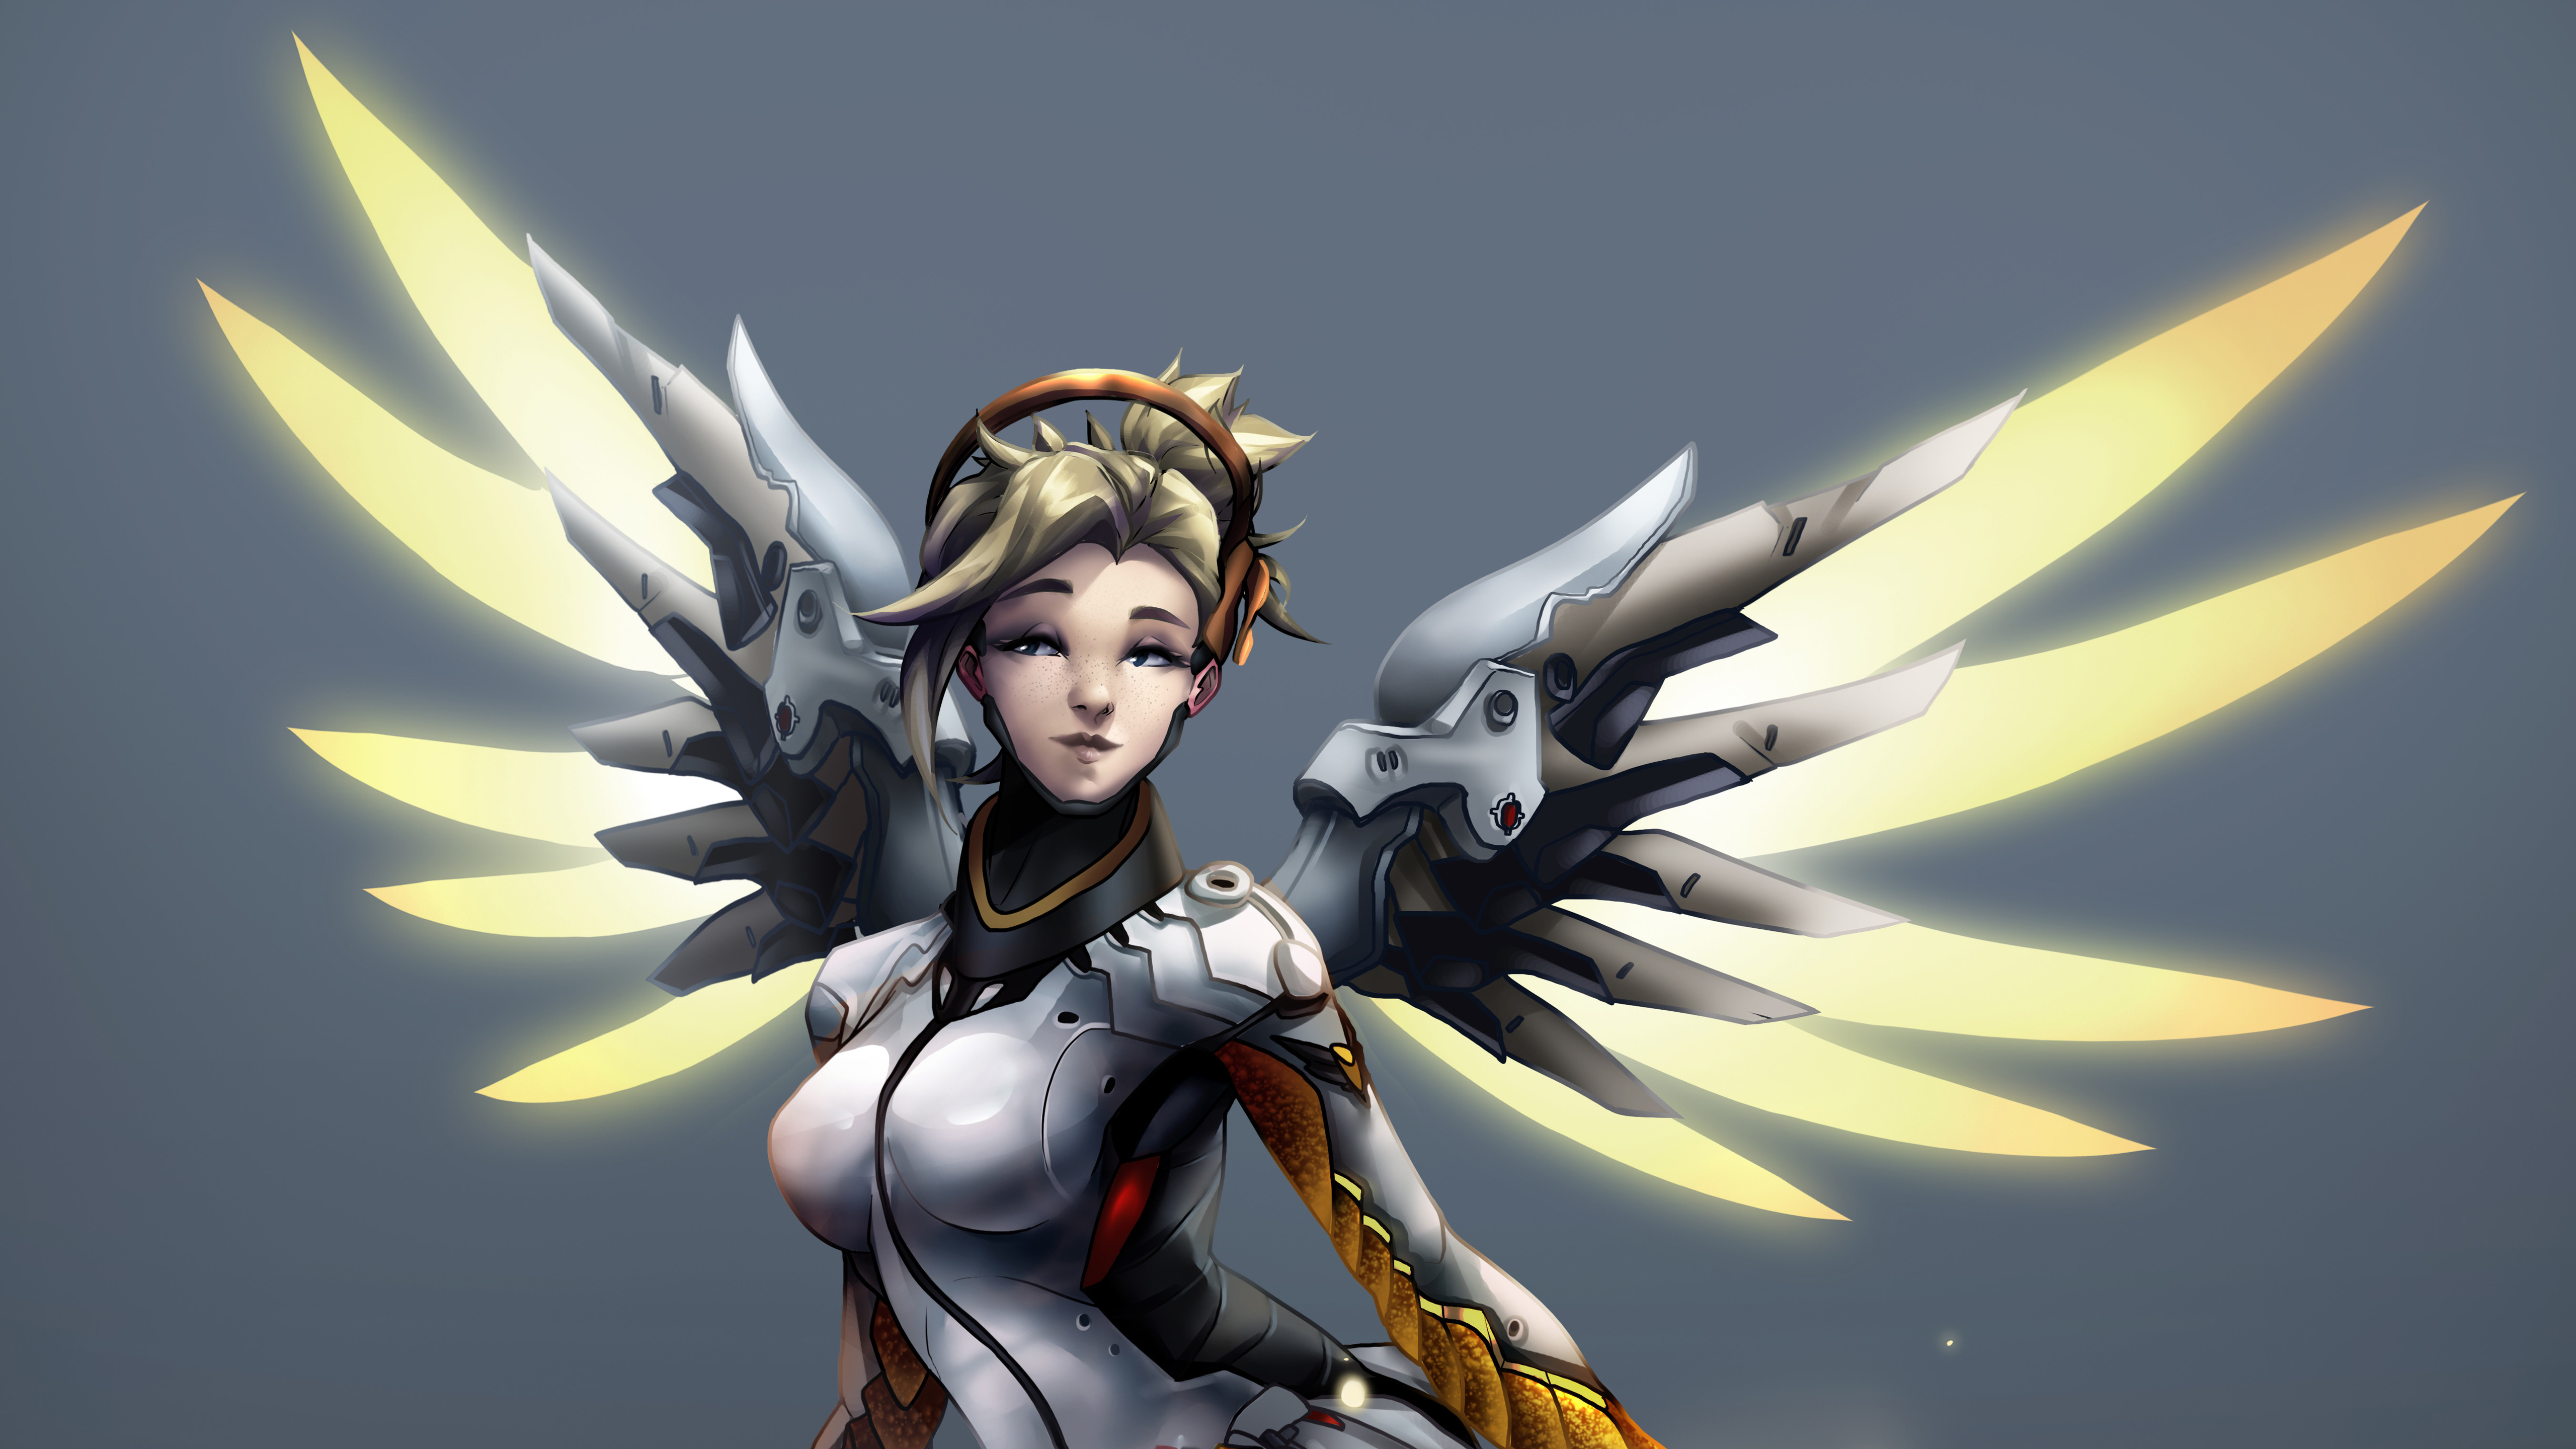 mercy-overwatch-digital-art-5k-fi.jpg